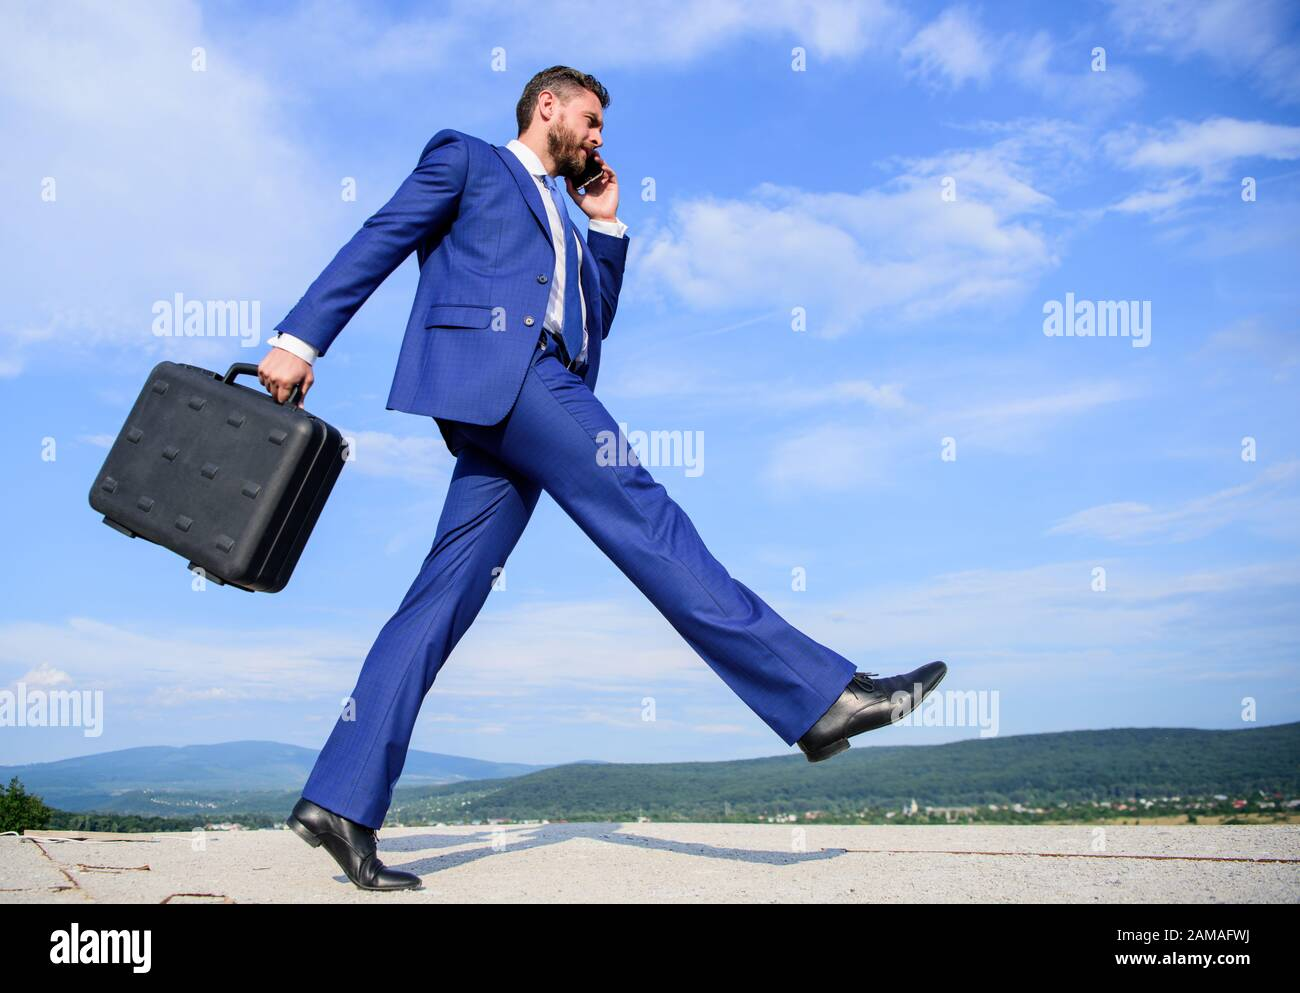 Businessman formal suit carries briefcase sky background. Businessman solving business problems on phone. Never stop. Keep going towards your goal. Entrepreneur in motion purposeful expression. Stock Photo